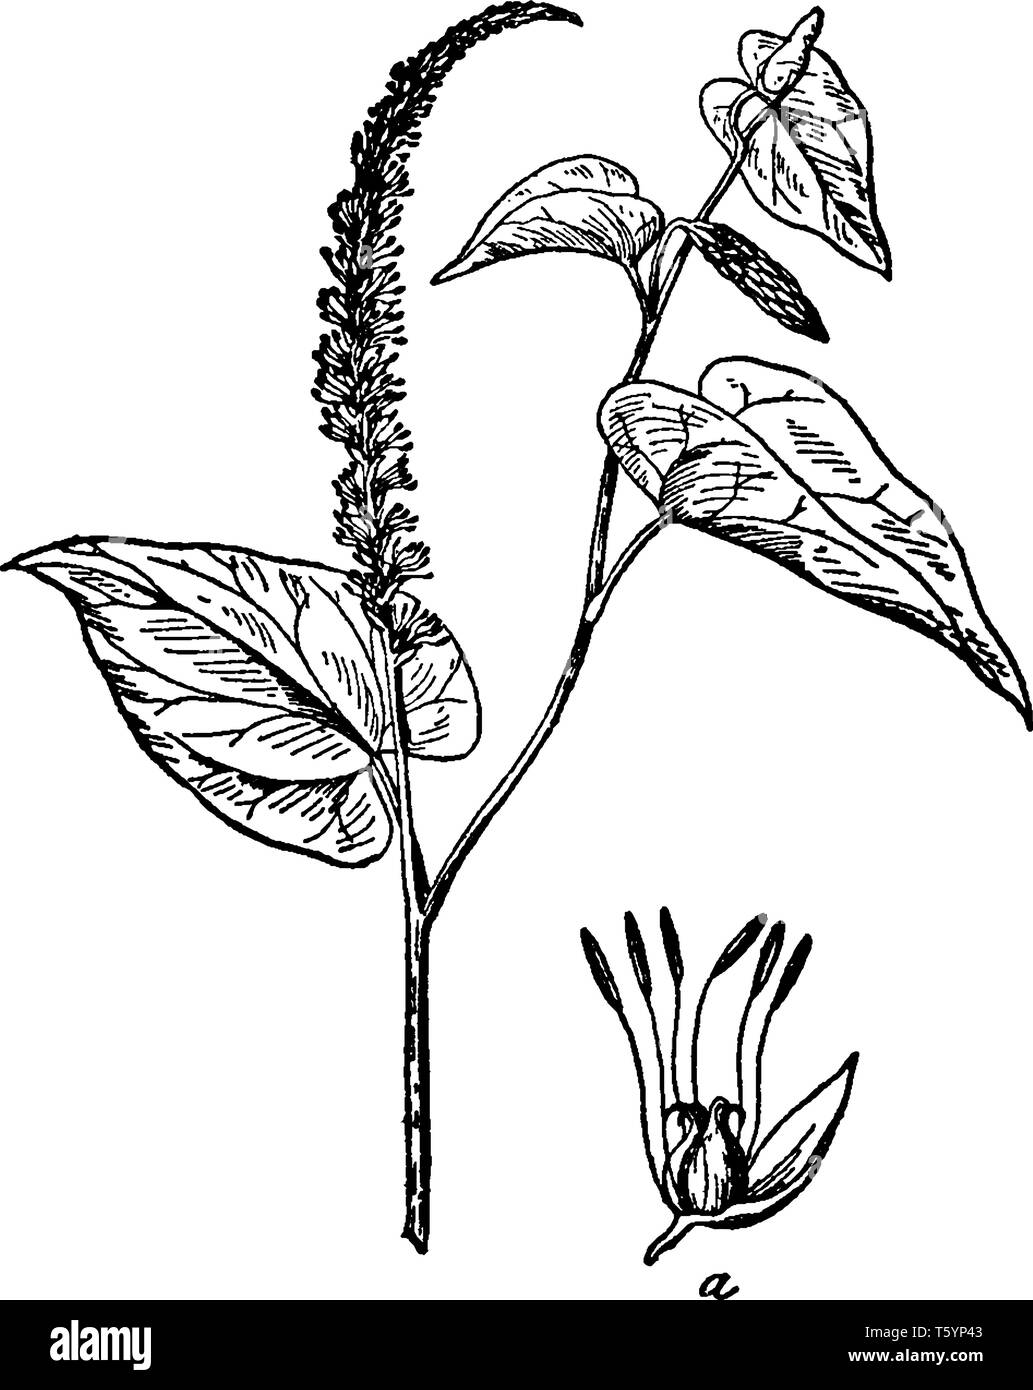 This is flowering branch of Lizard's Tail. Flowers are borne on a long hairy stem and its leaves are heart shaped, vintage line drawing or engraving i - Stock Image